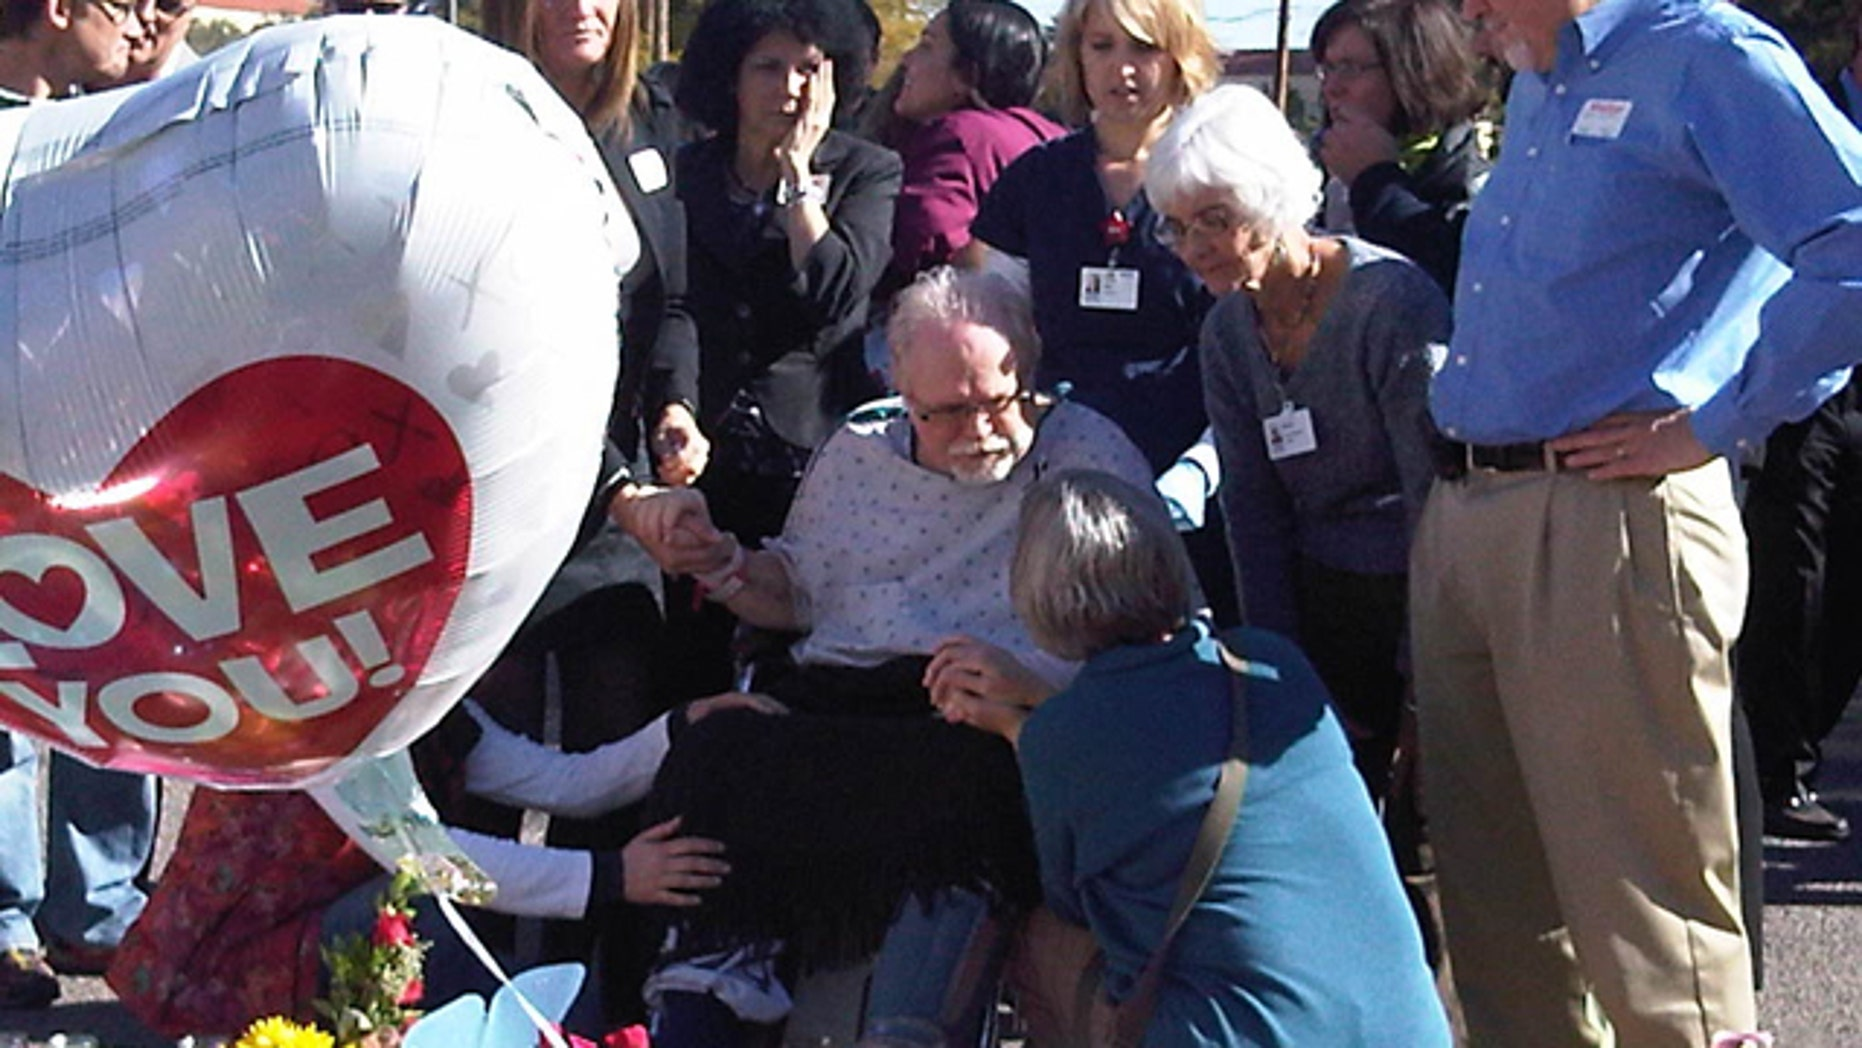 Jan. 13: Ron Barber, an aide to Giffords who was shot in the cheek, leaves the hospital for the first time to visit well-wishers and view a makeshift memorial.